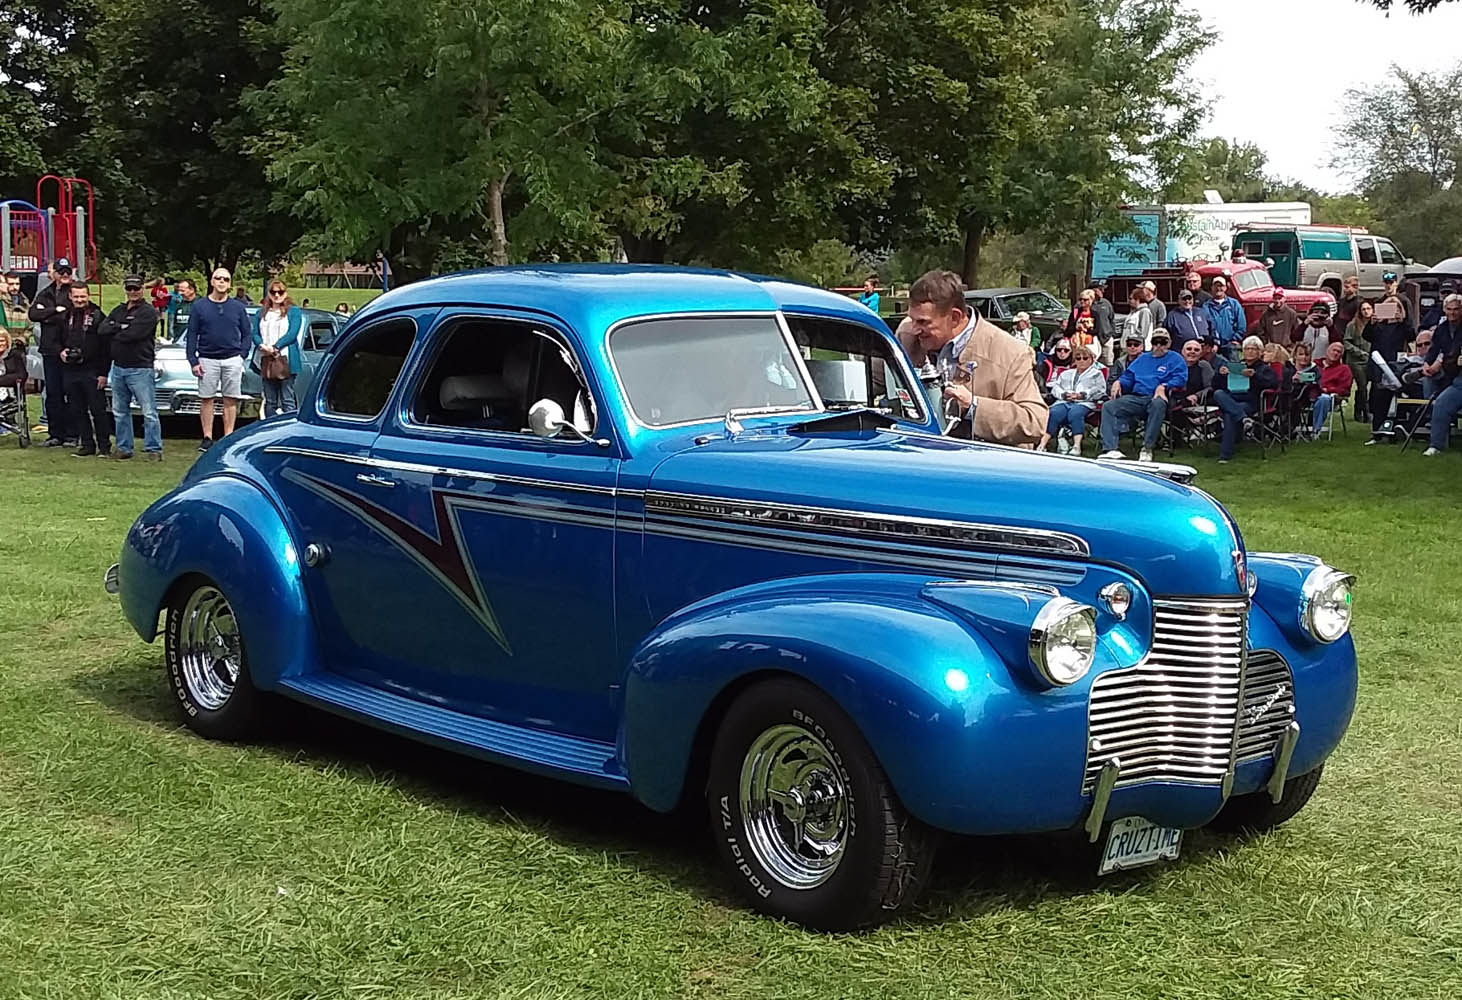 Specialty- 1940 Chevy Coupe, Nick & Janet Polasek 1